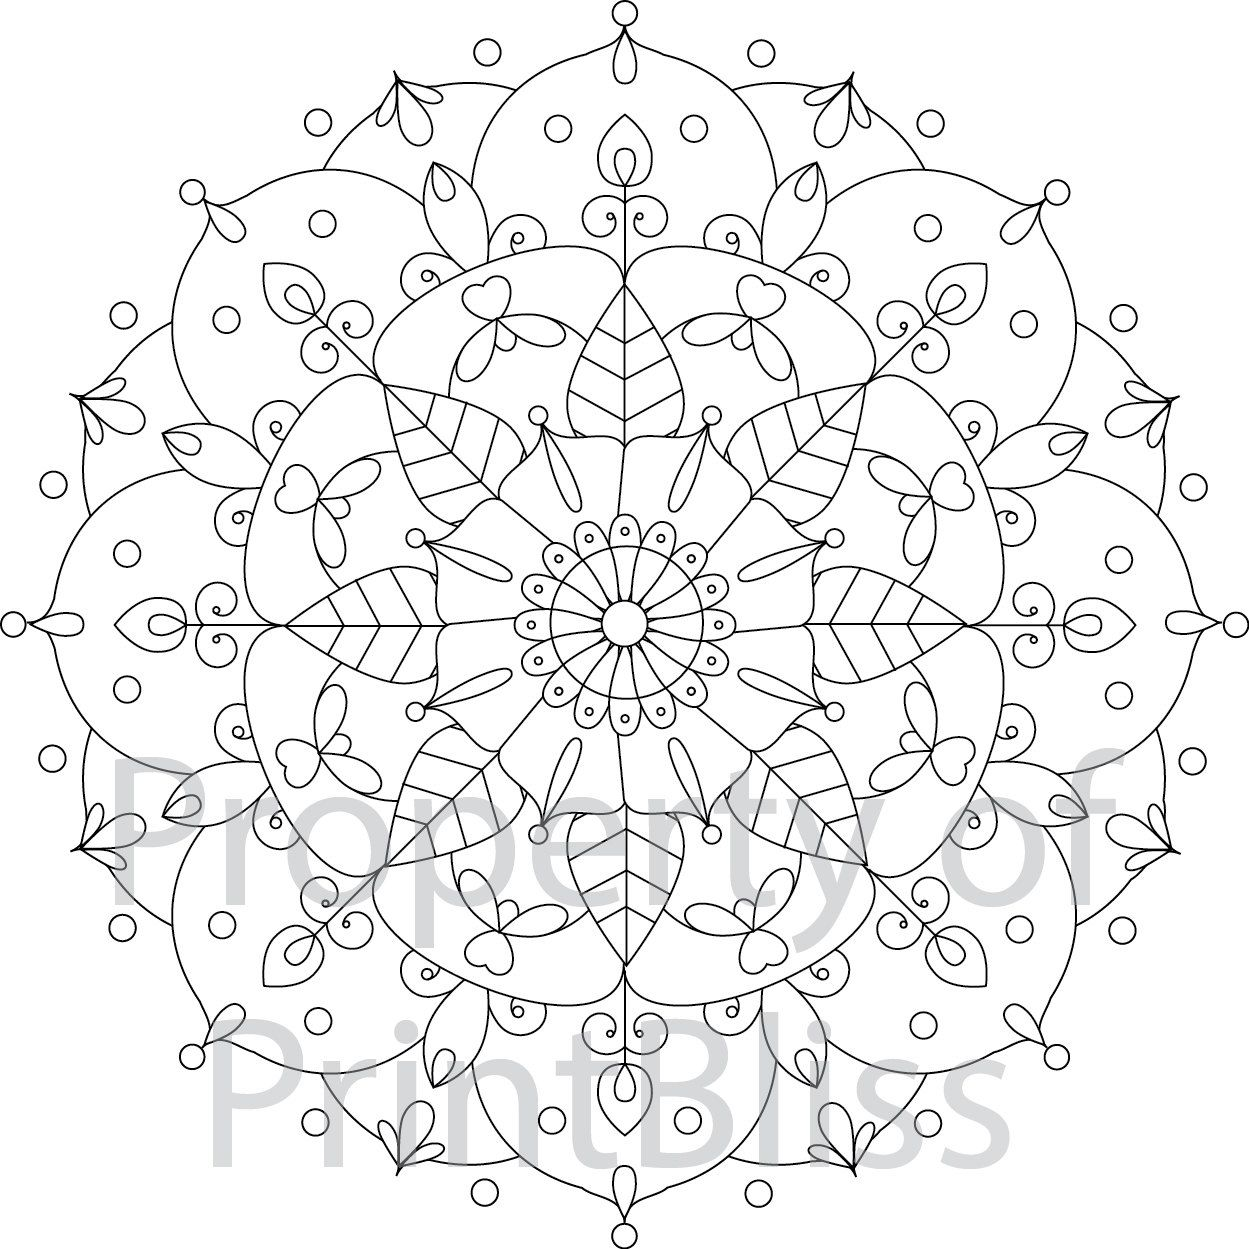 Printable coloring pages etsy - Flower Mandala Printable Coloring Page By Printbliss On Etsy